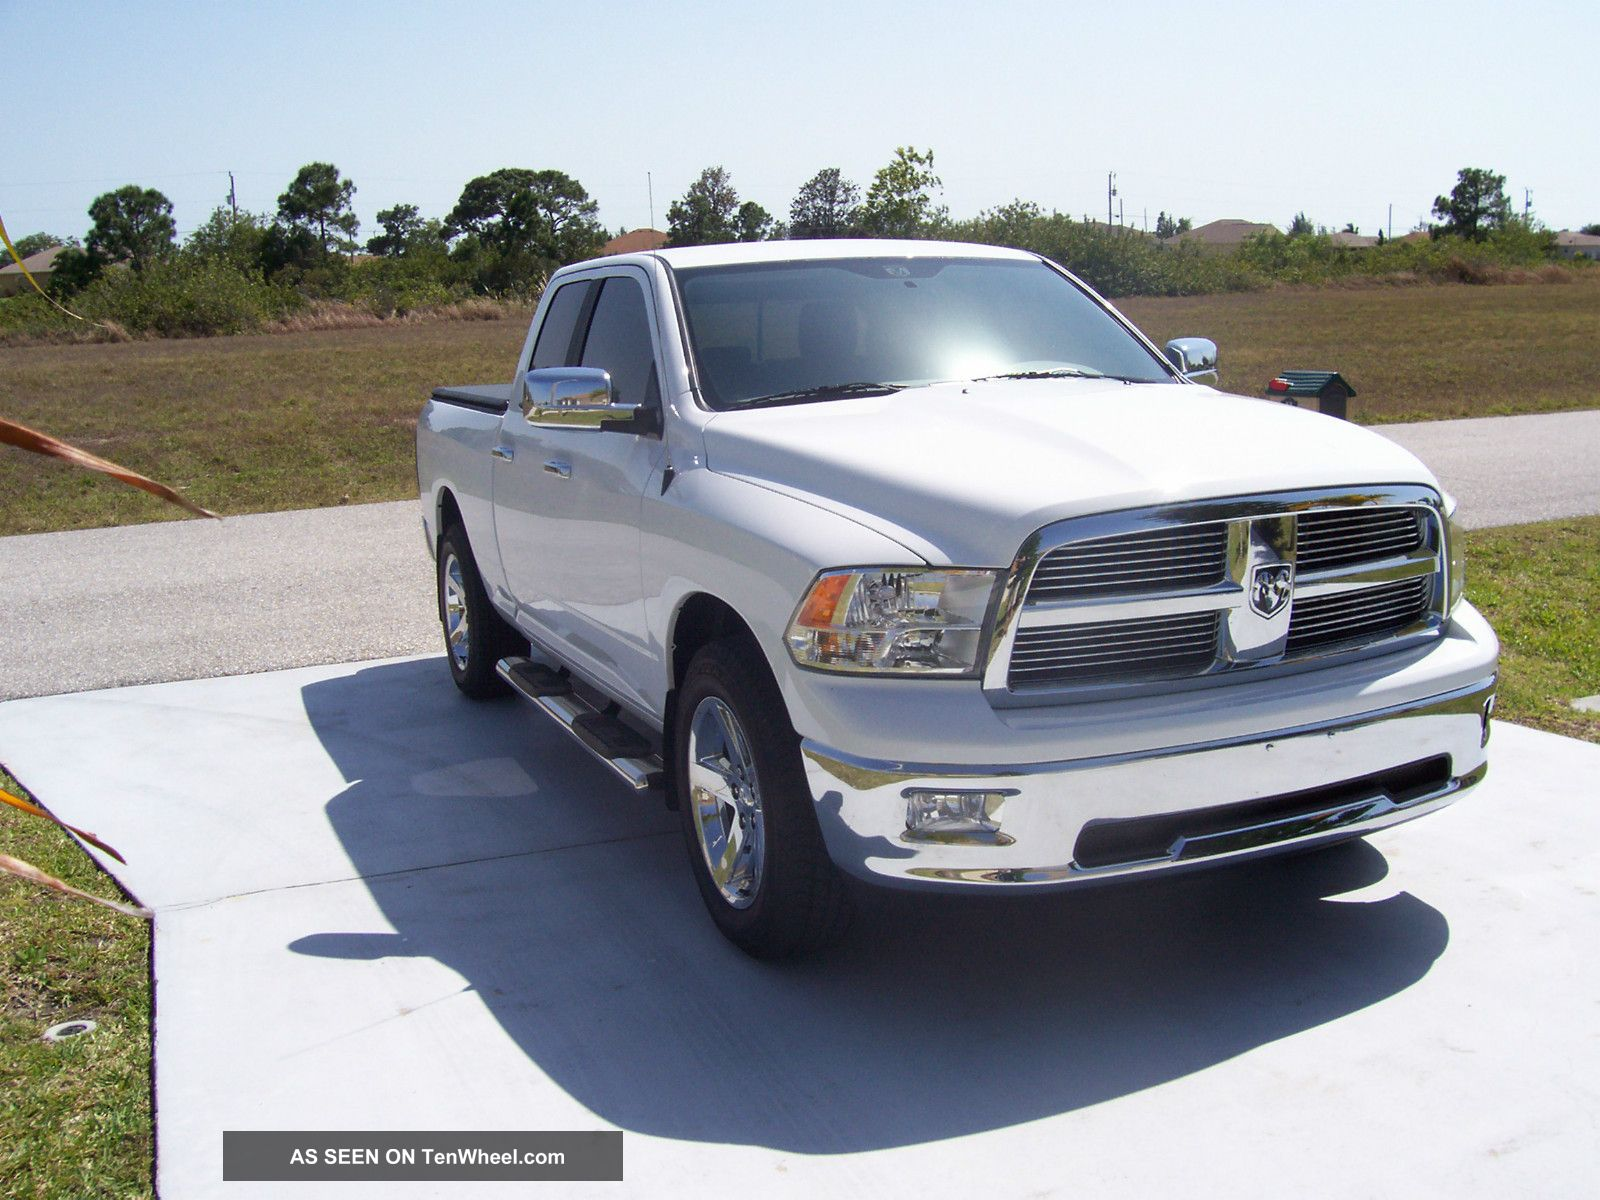 2012 dodge ram 1500 quad cab 4x4 slt big horn ram 1500 photo 1. Black Bedroom Furniture Sets. Home Design Ideas